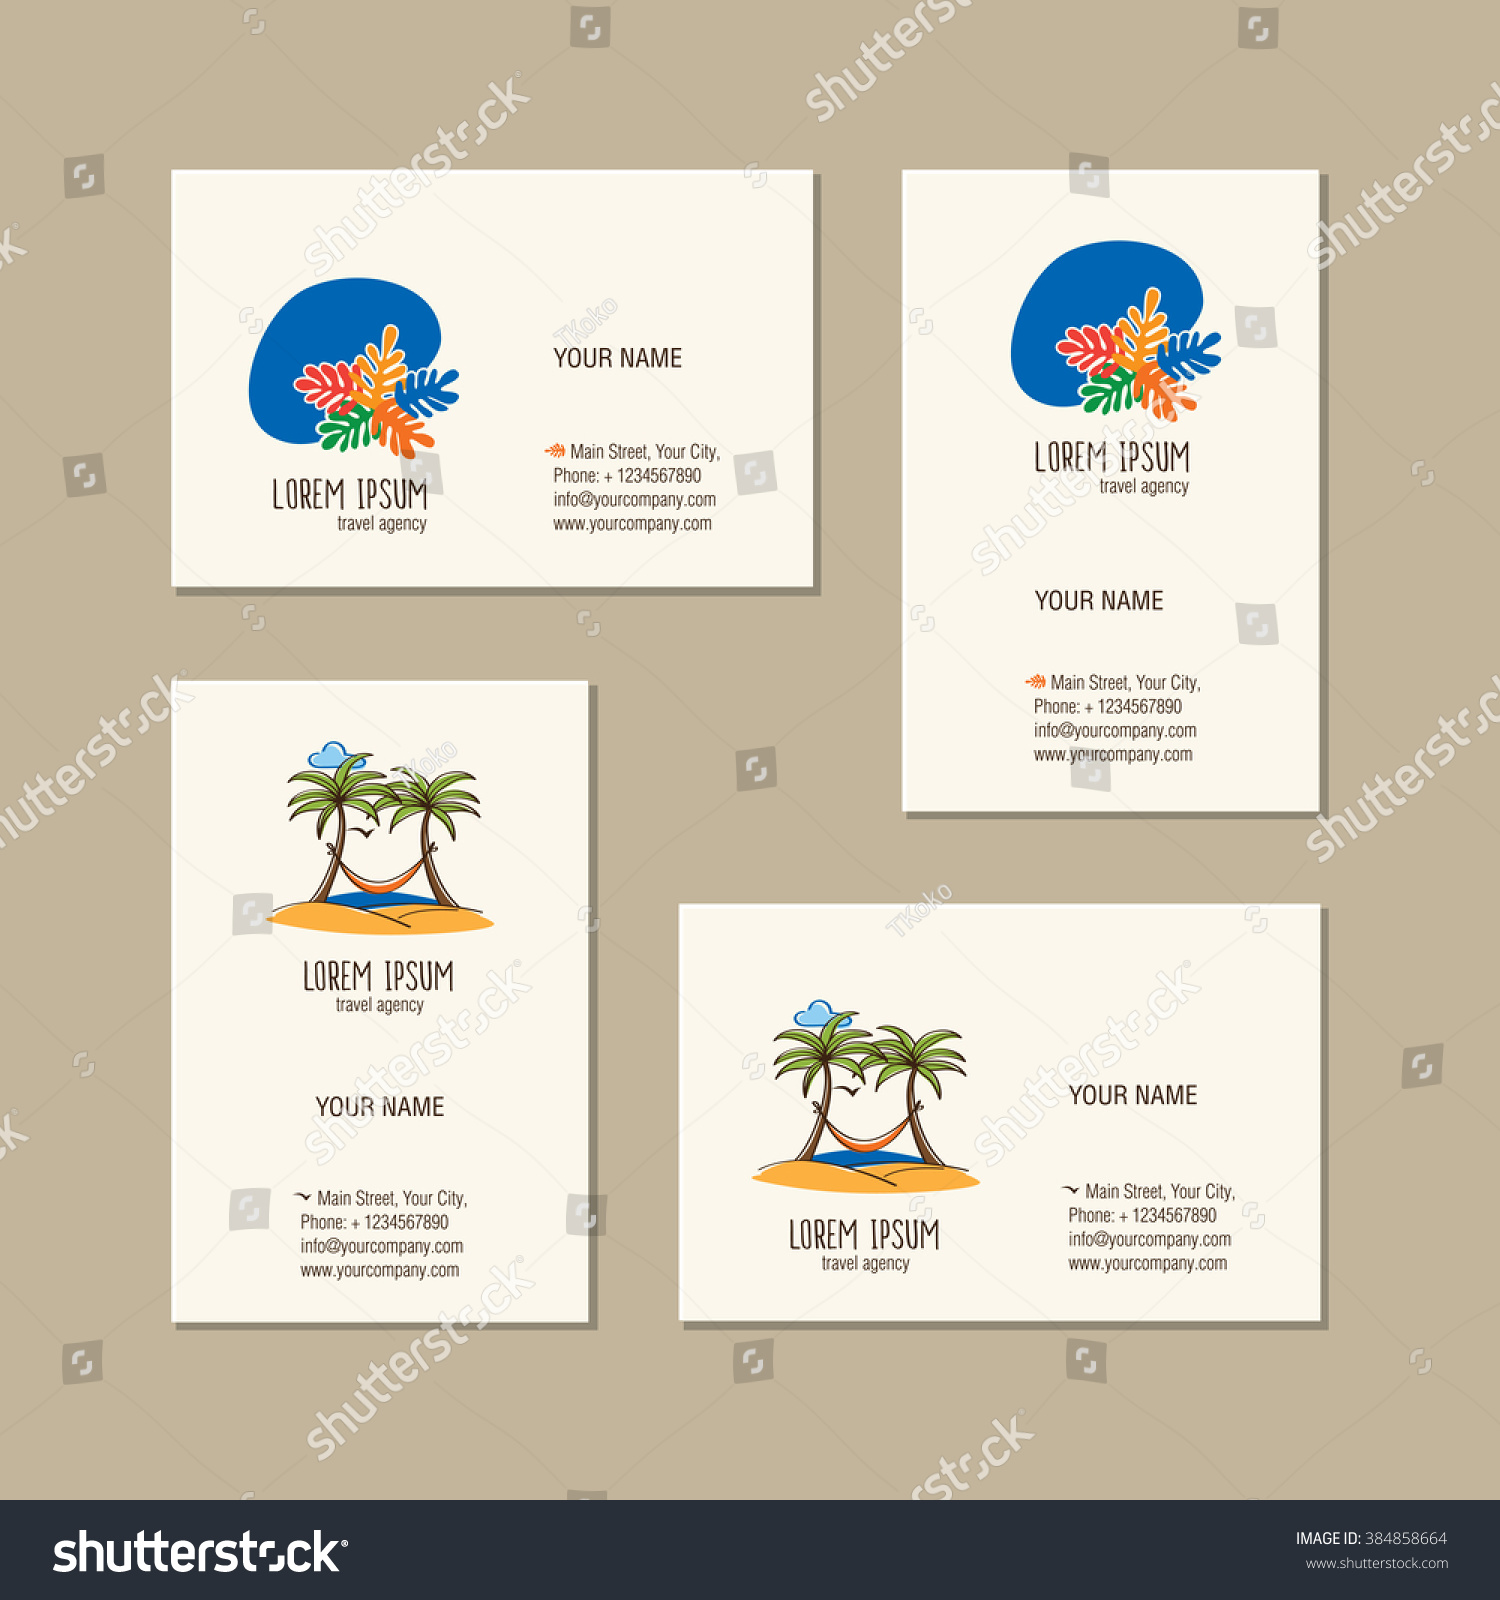 Travel agent business card images free business cards travel agency business card template hand stock vector 384858664 travel agency business card template hand drawn magicingreecefo Choice Image